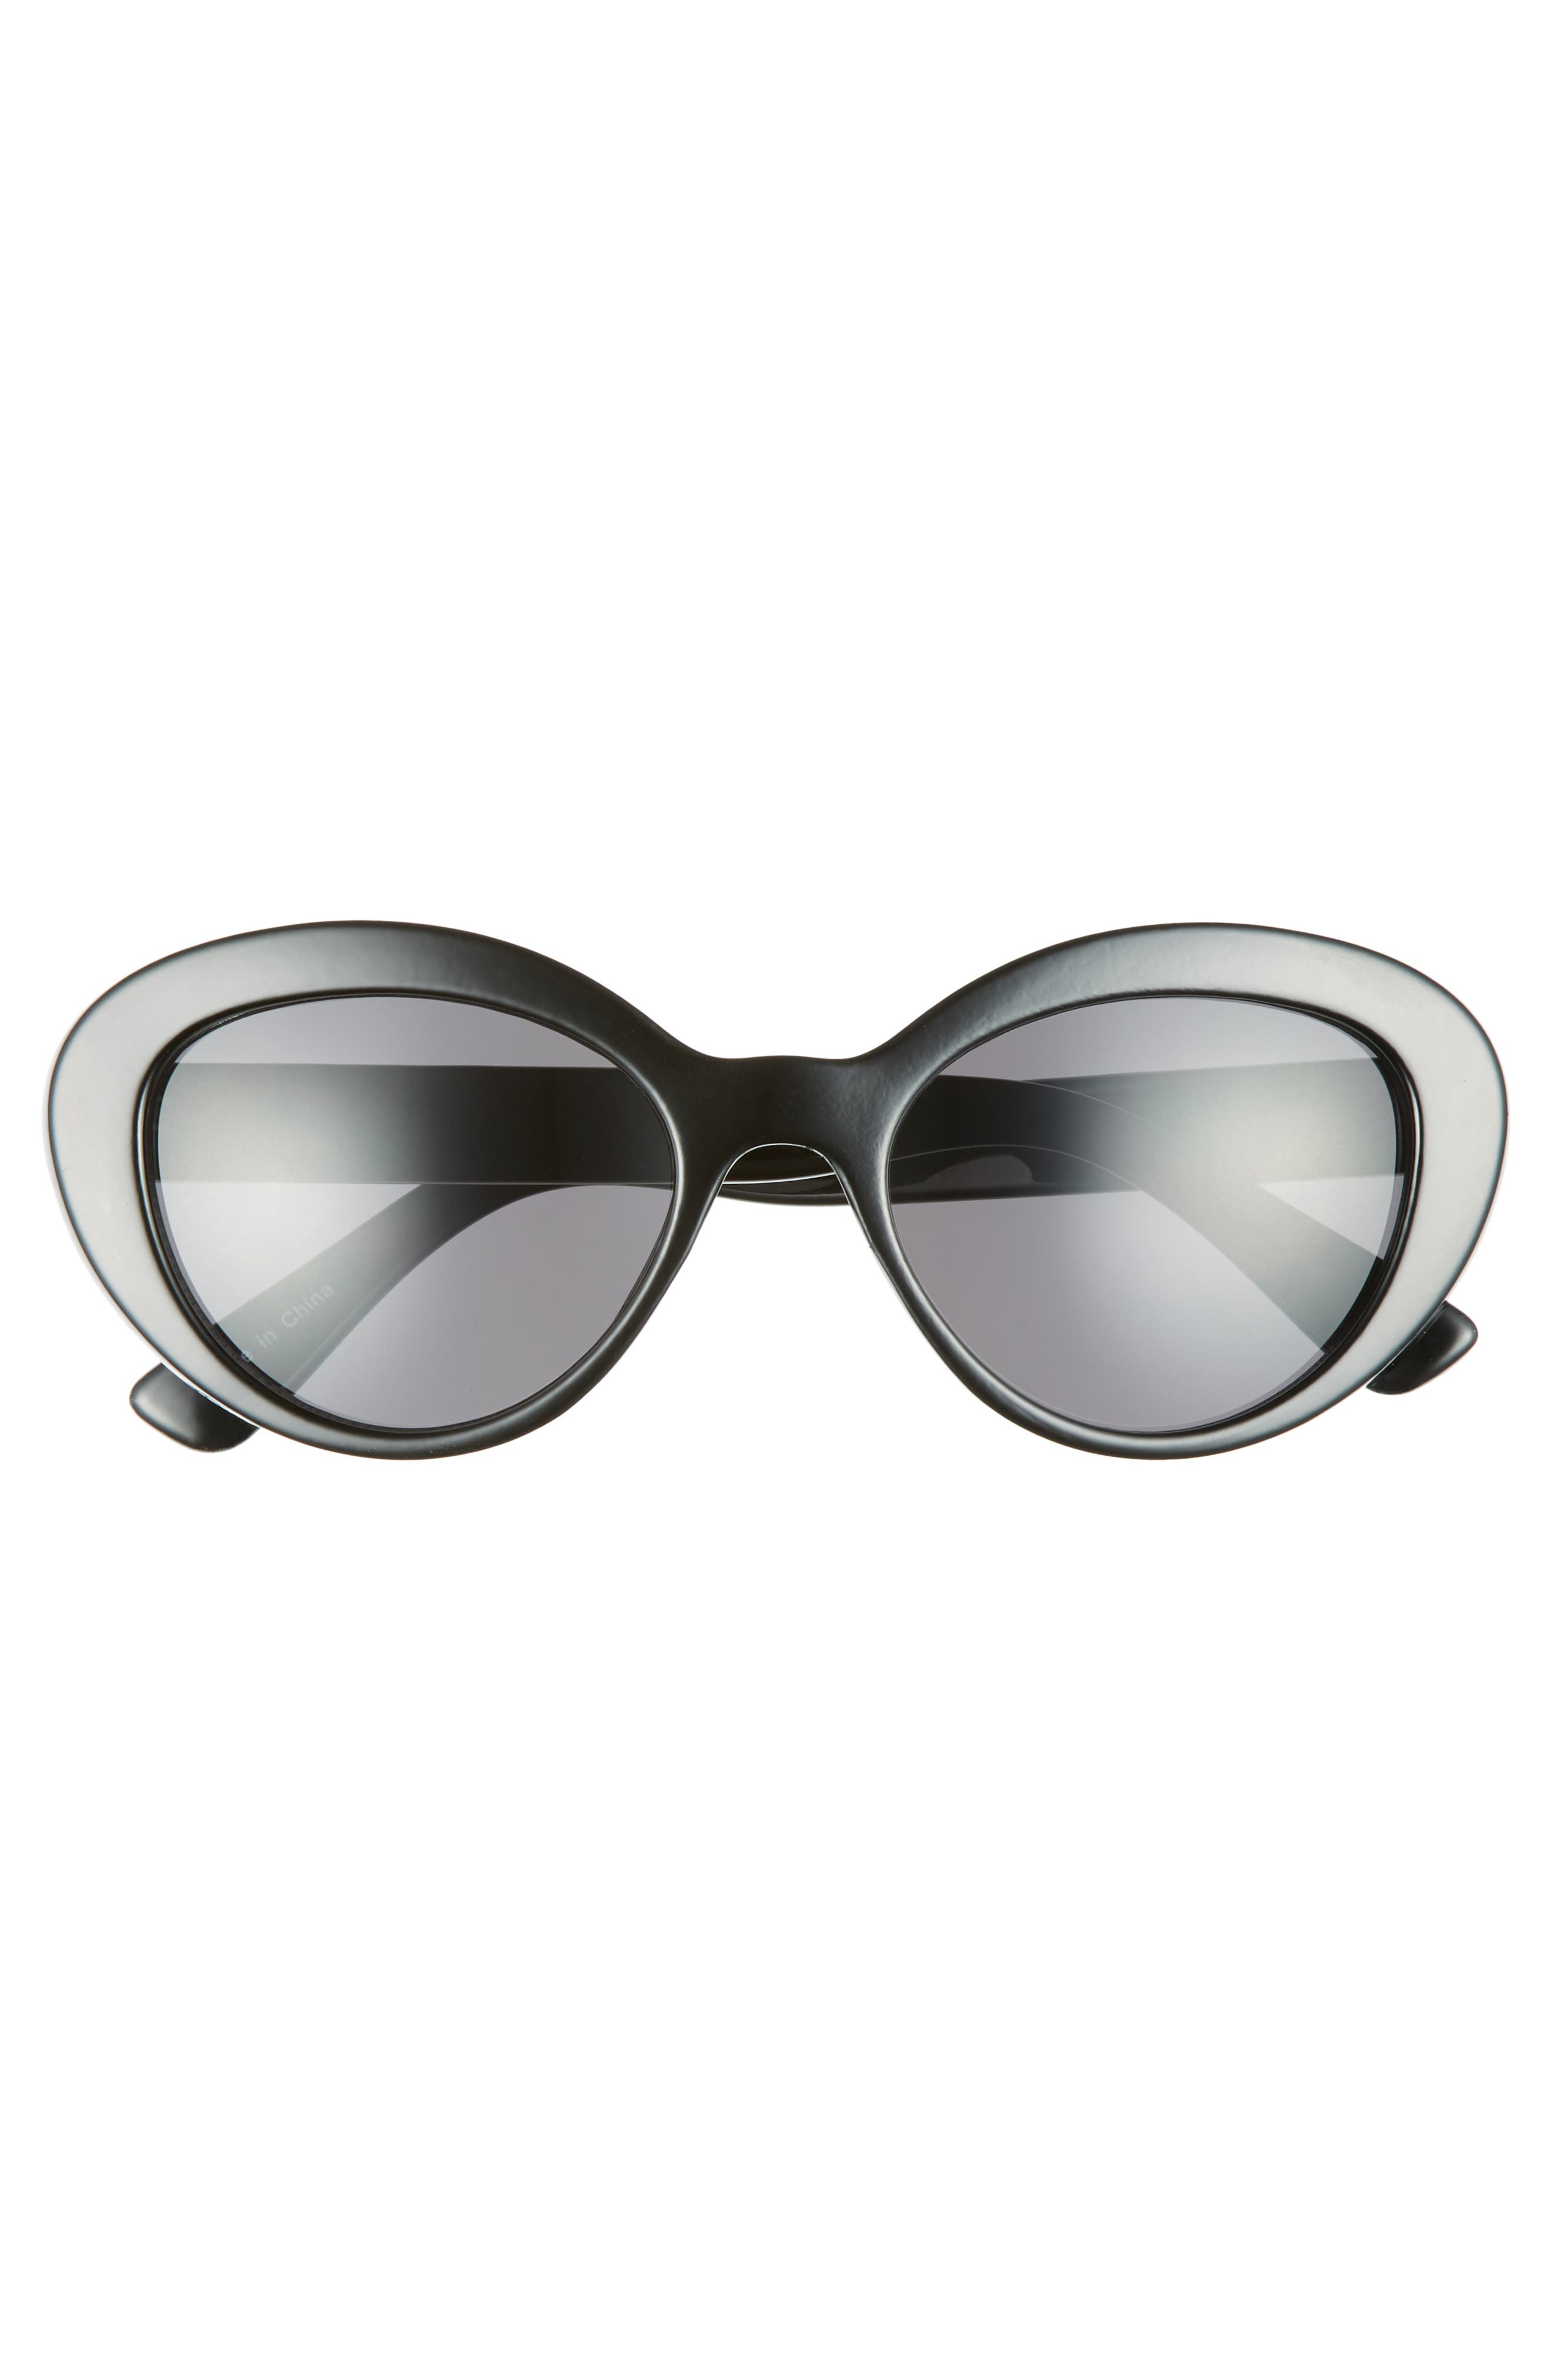 50mm Vintage Cat Eye Sunglasses,                             Alternate thumbnail 3, color,                             001